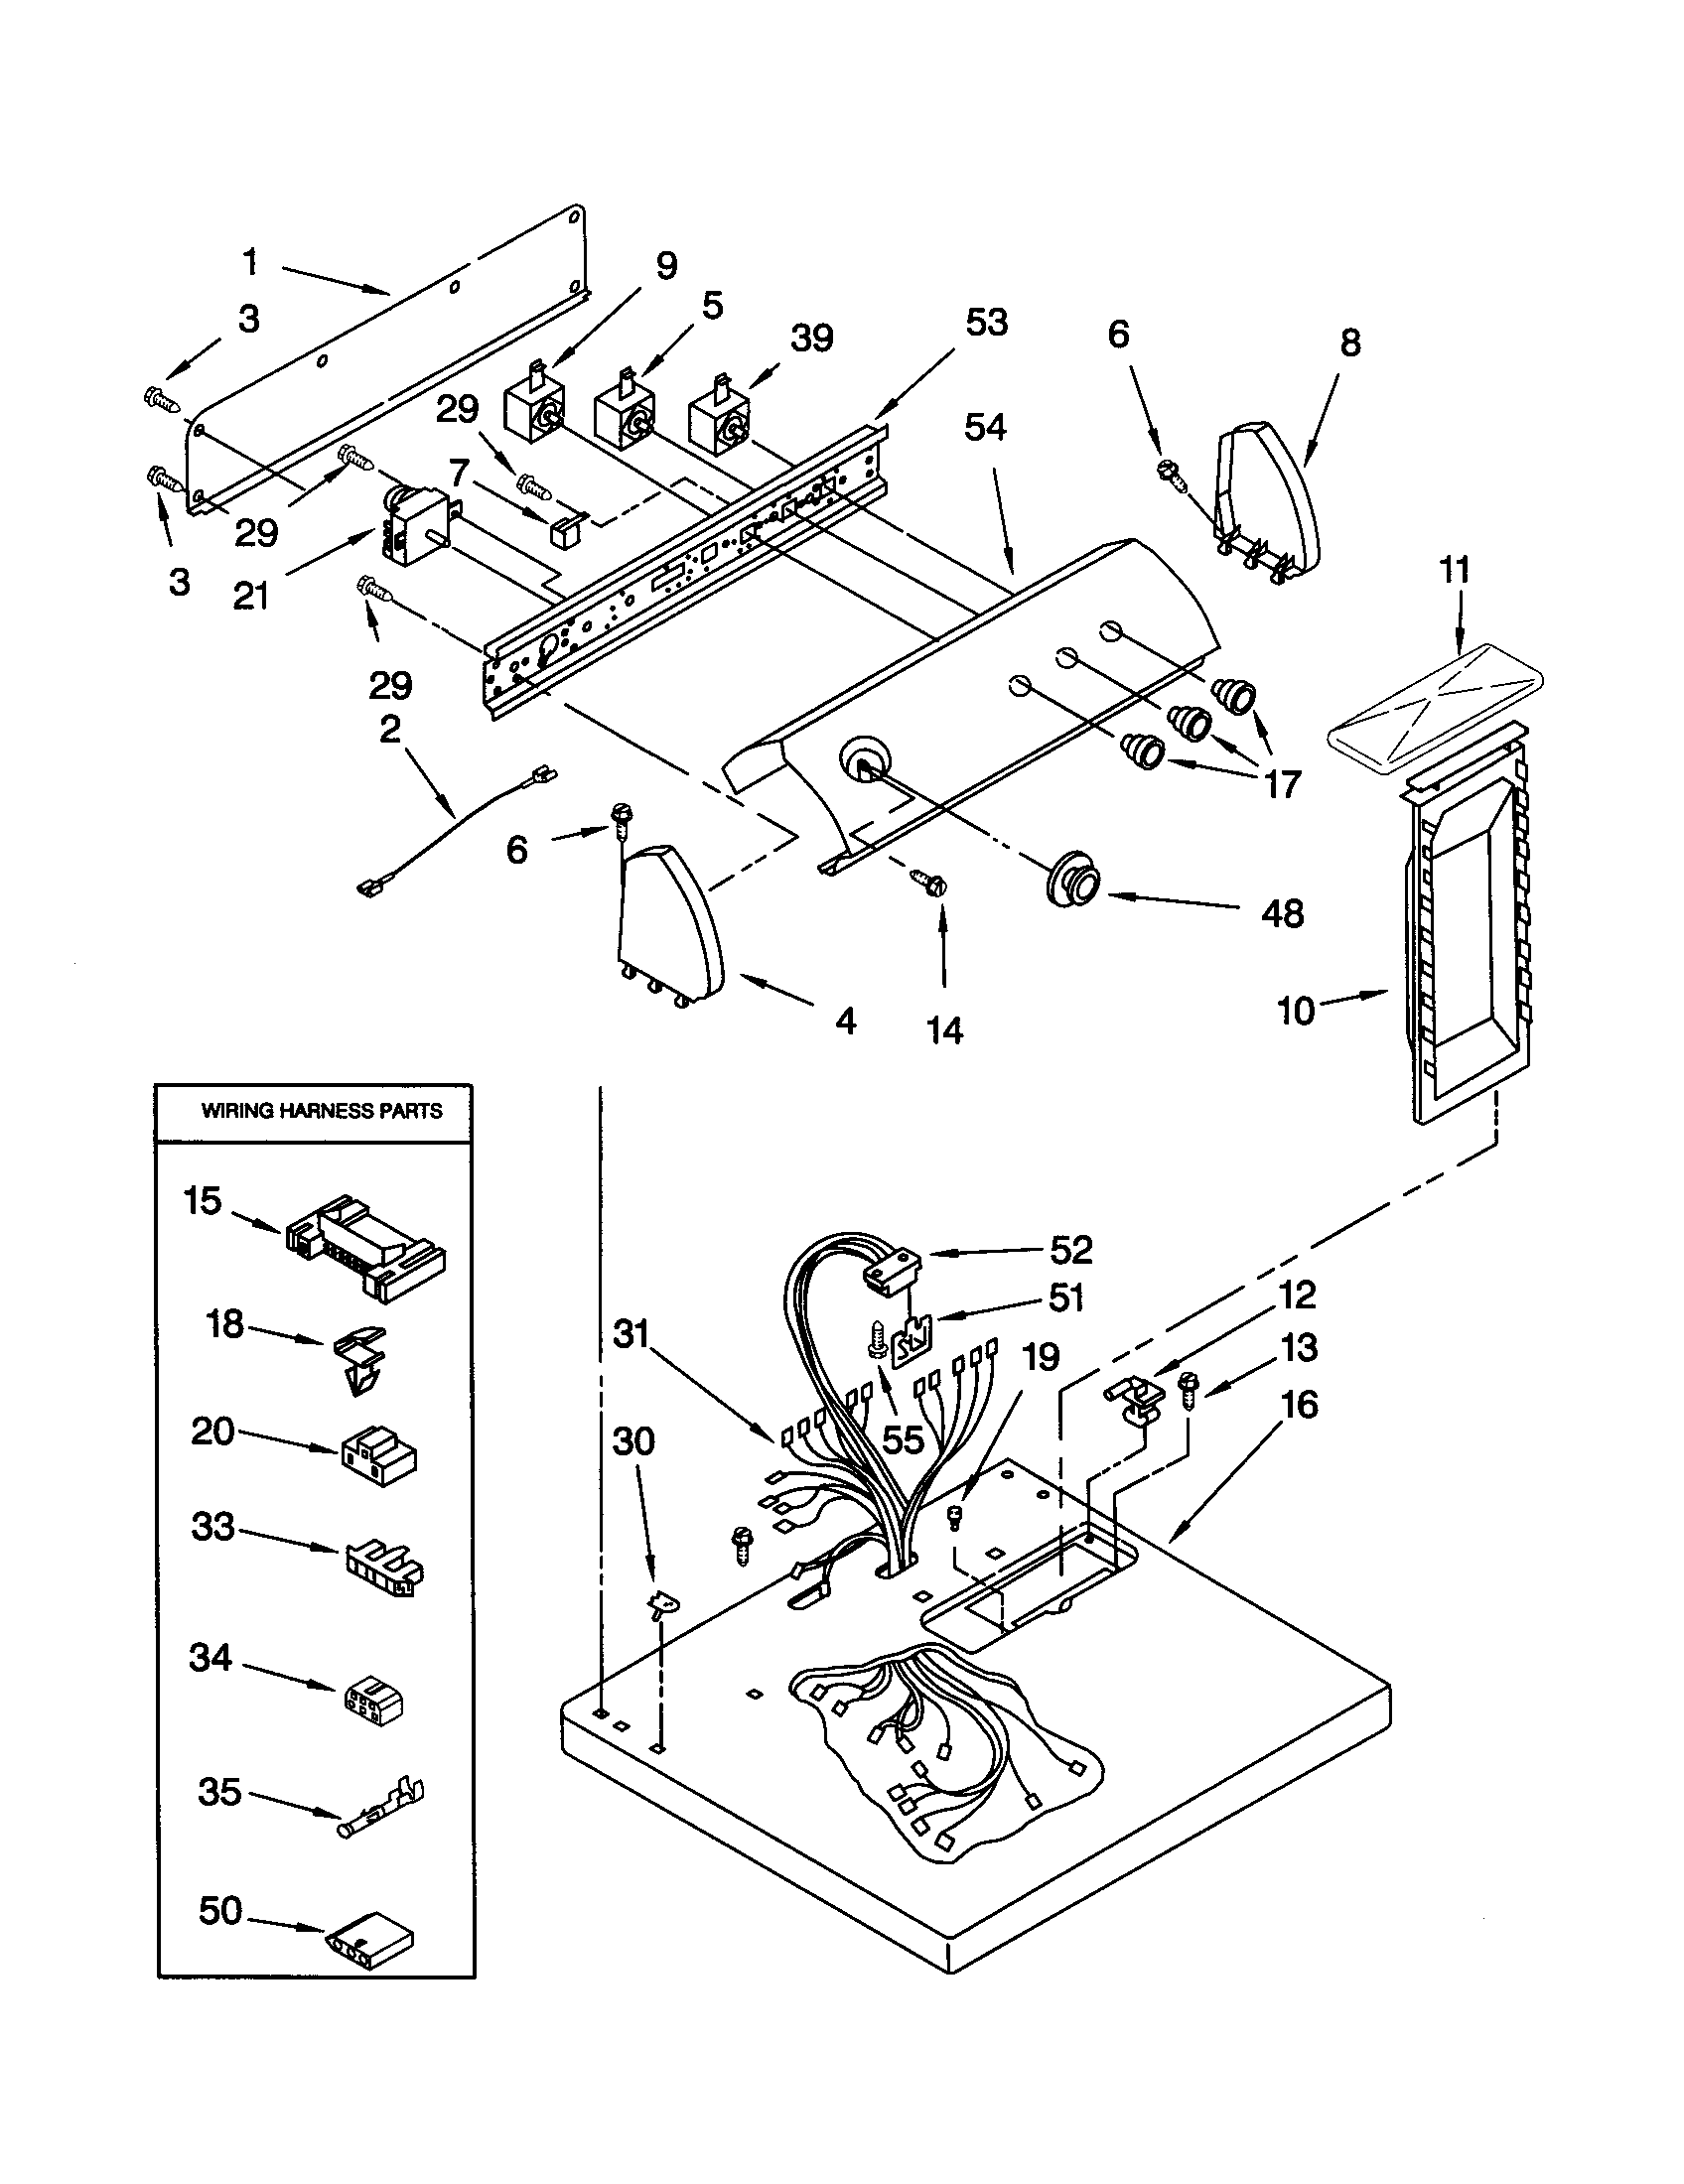 TOP AND CONSOLE Diagram & Parts List for Model leq8858jq1